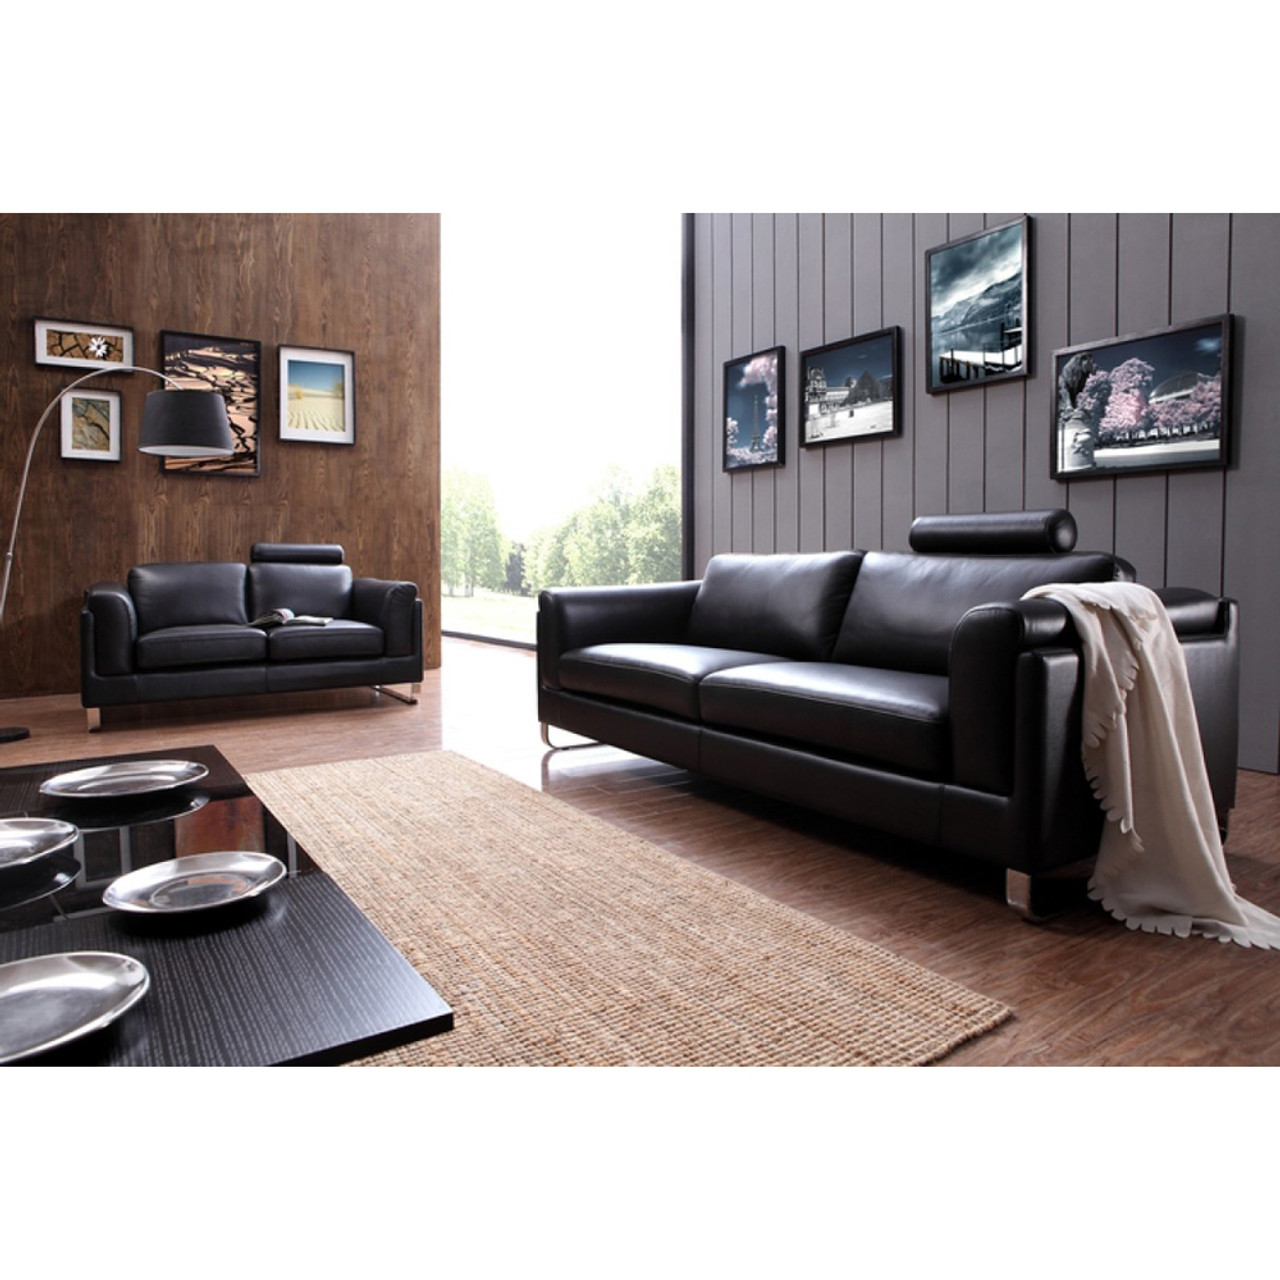 Divani Leather Sofa For Sale Divani Casa 0875 Modern Black Leather Sofa Set